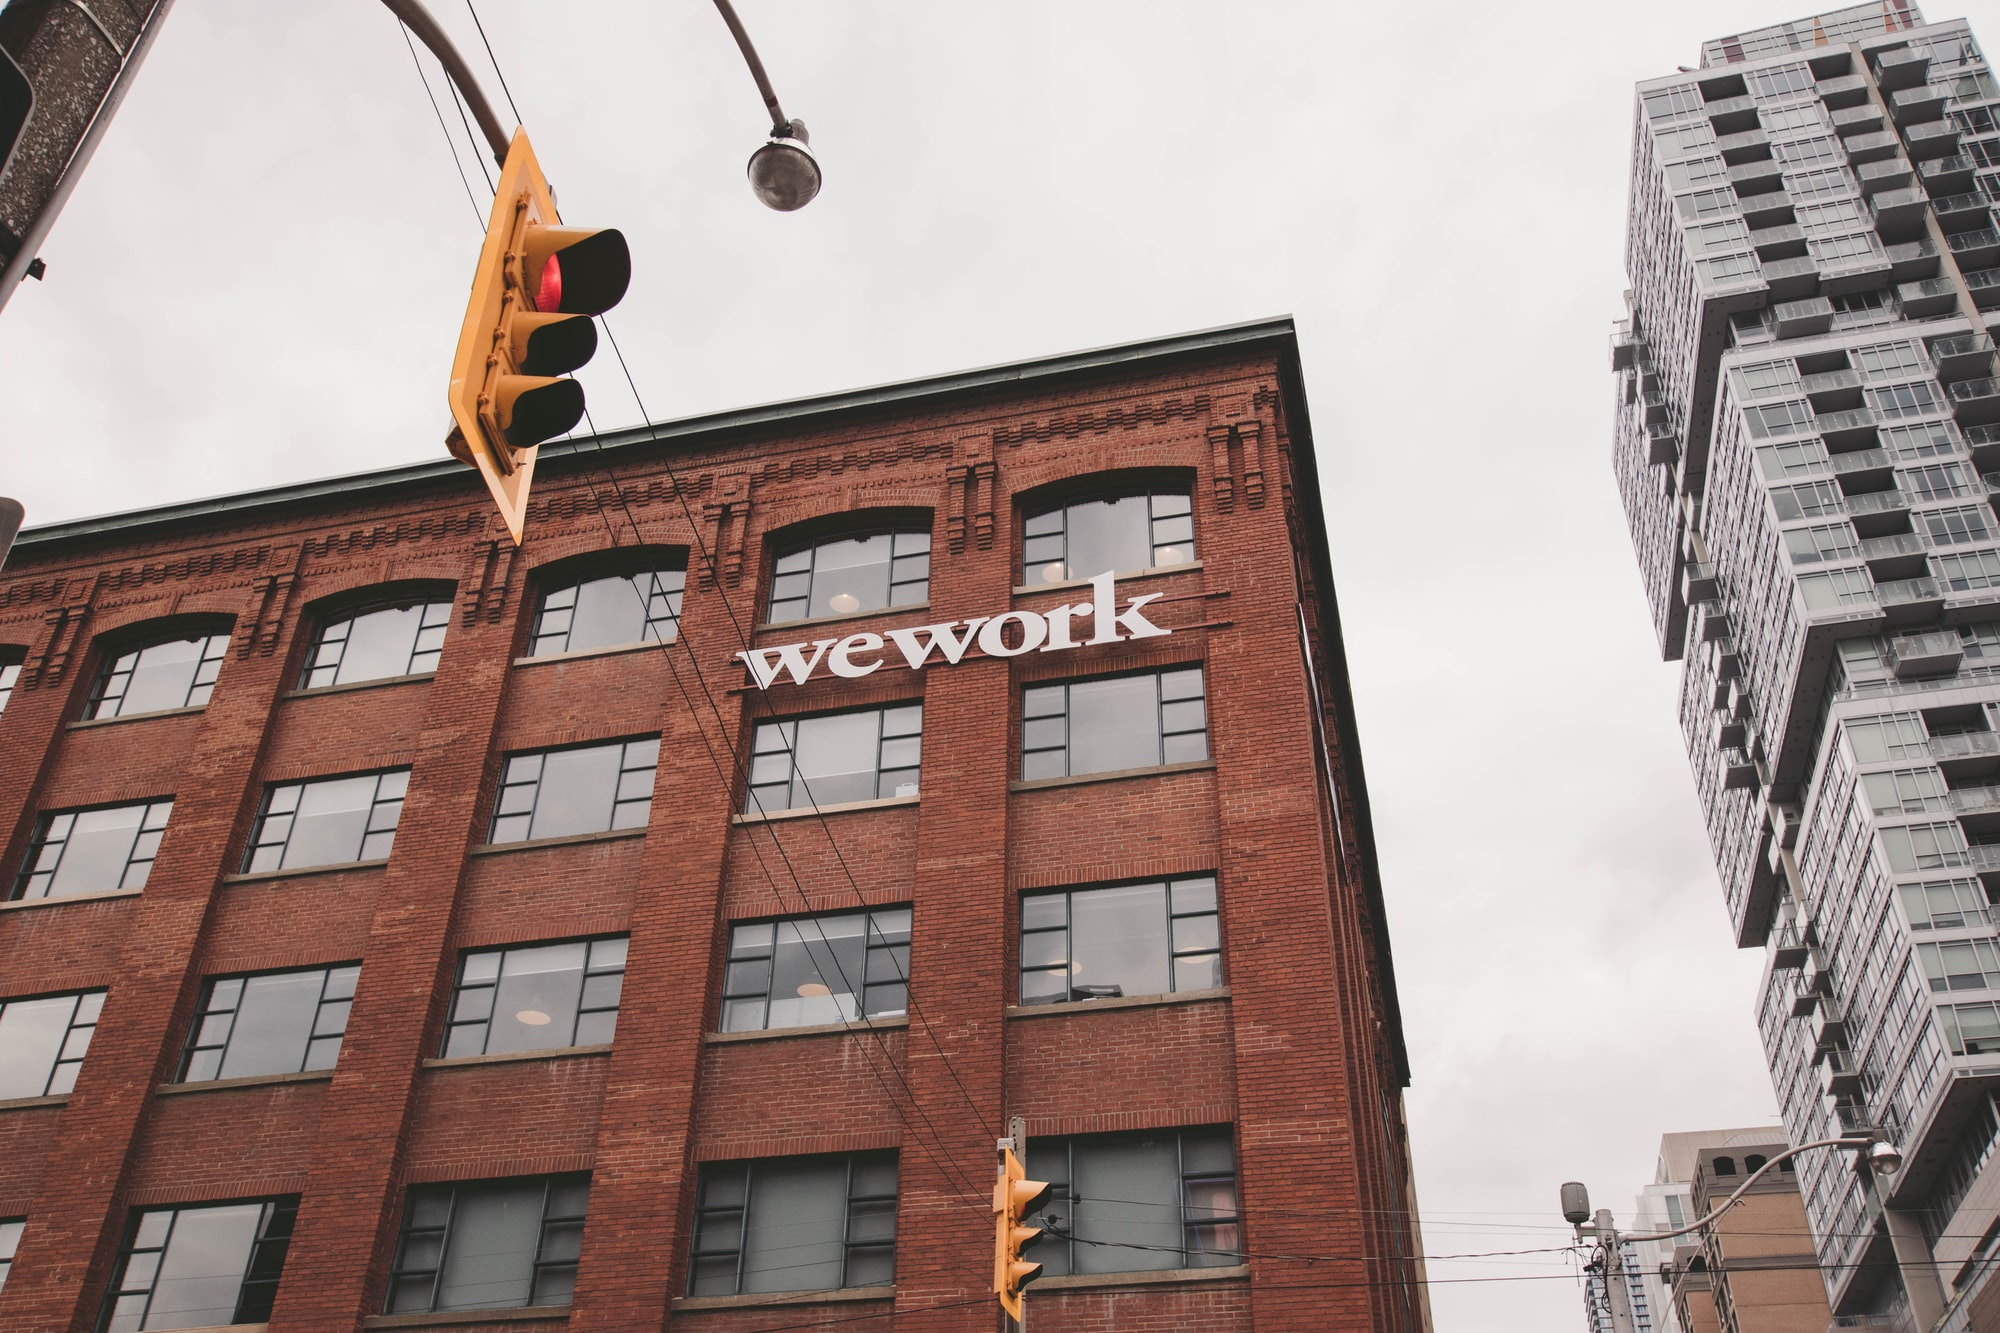 AppleTV+ will produce a mini-documentary about Wework fall